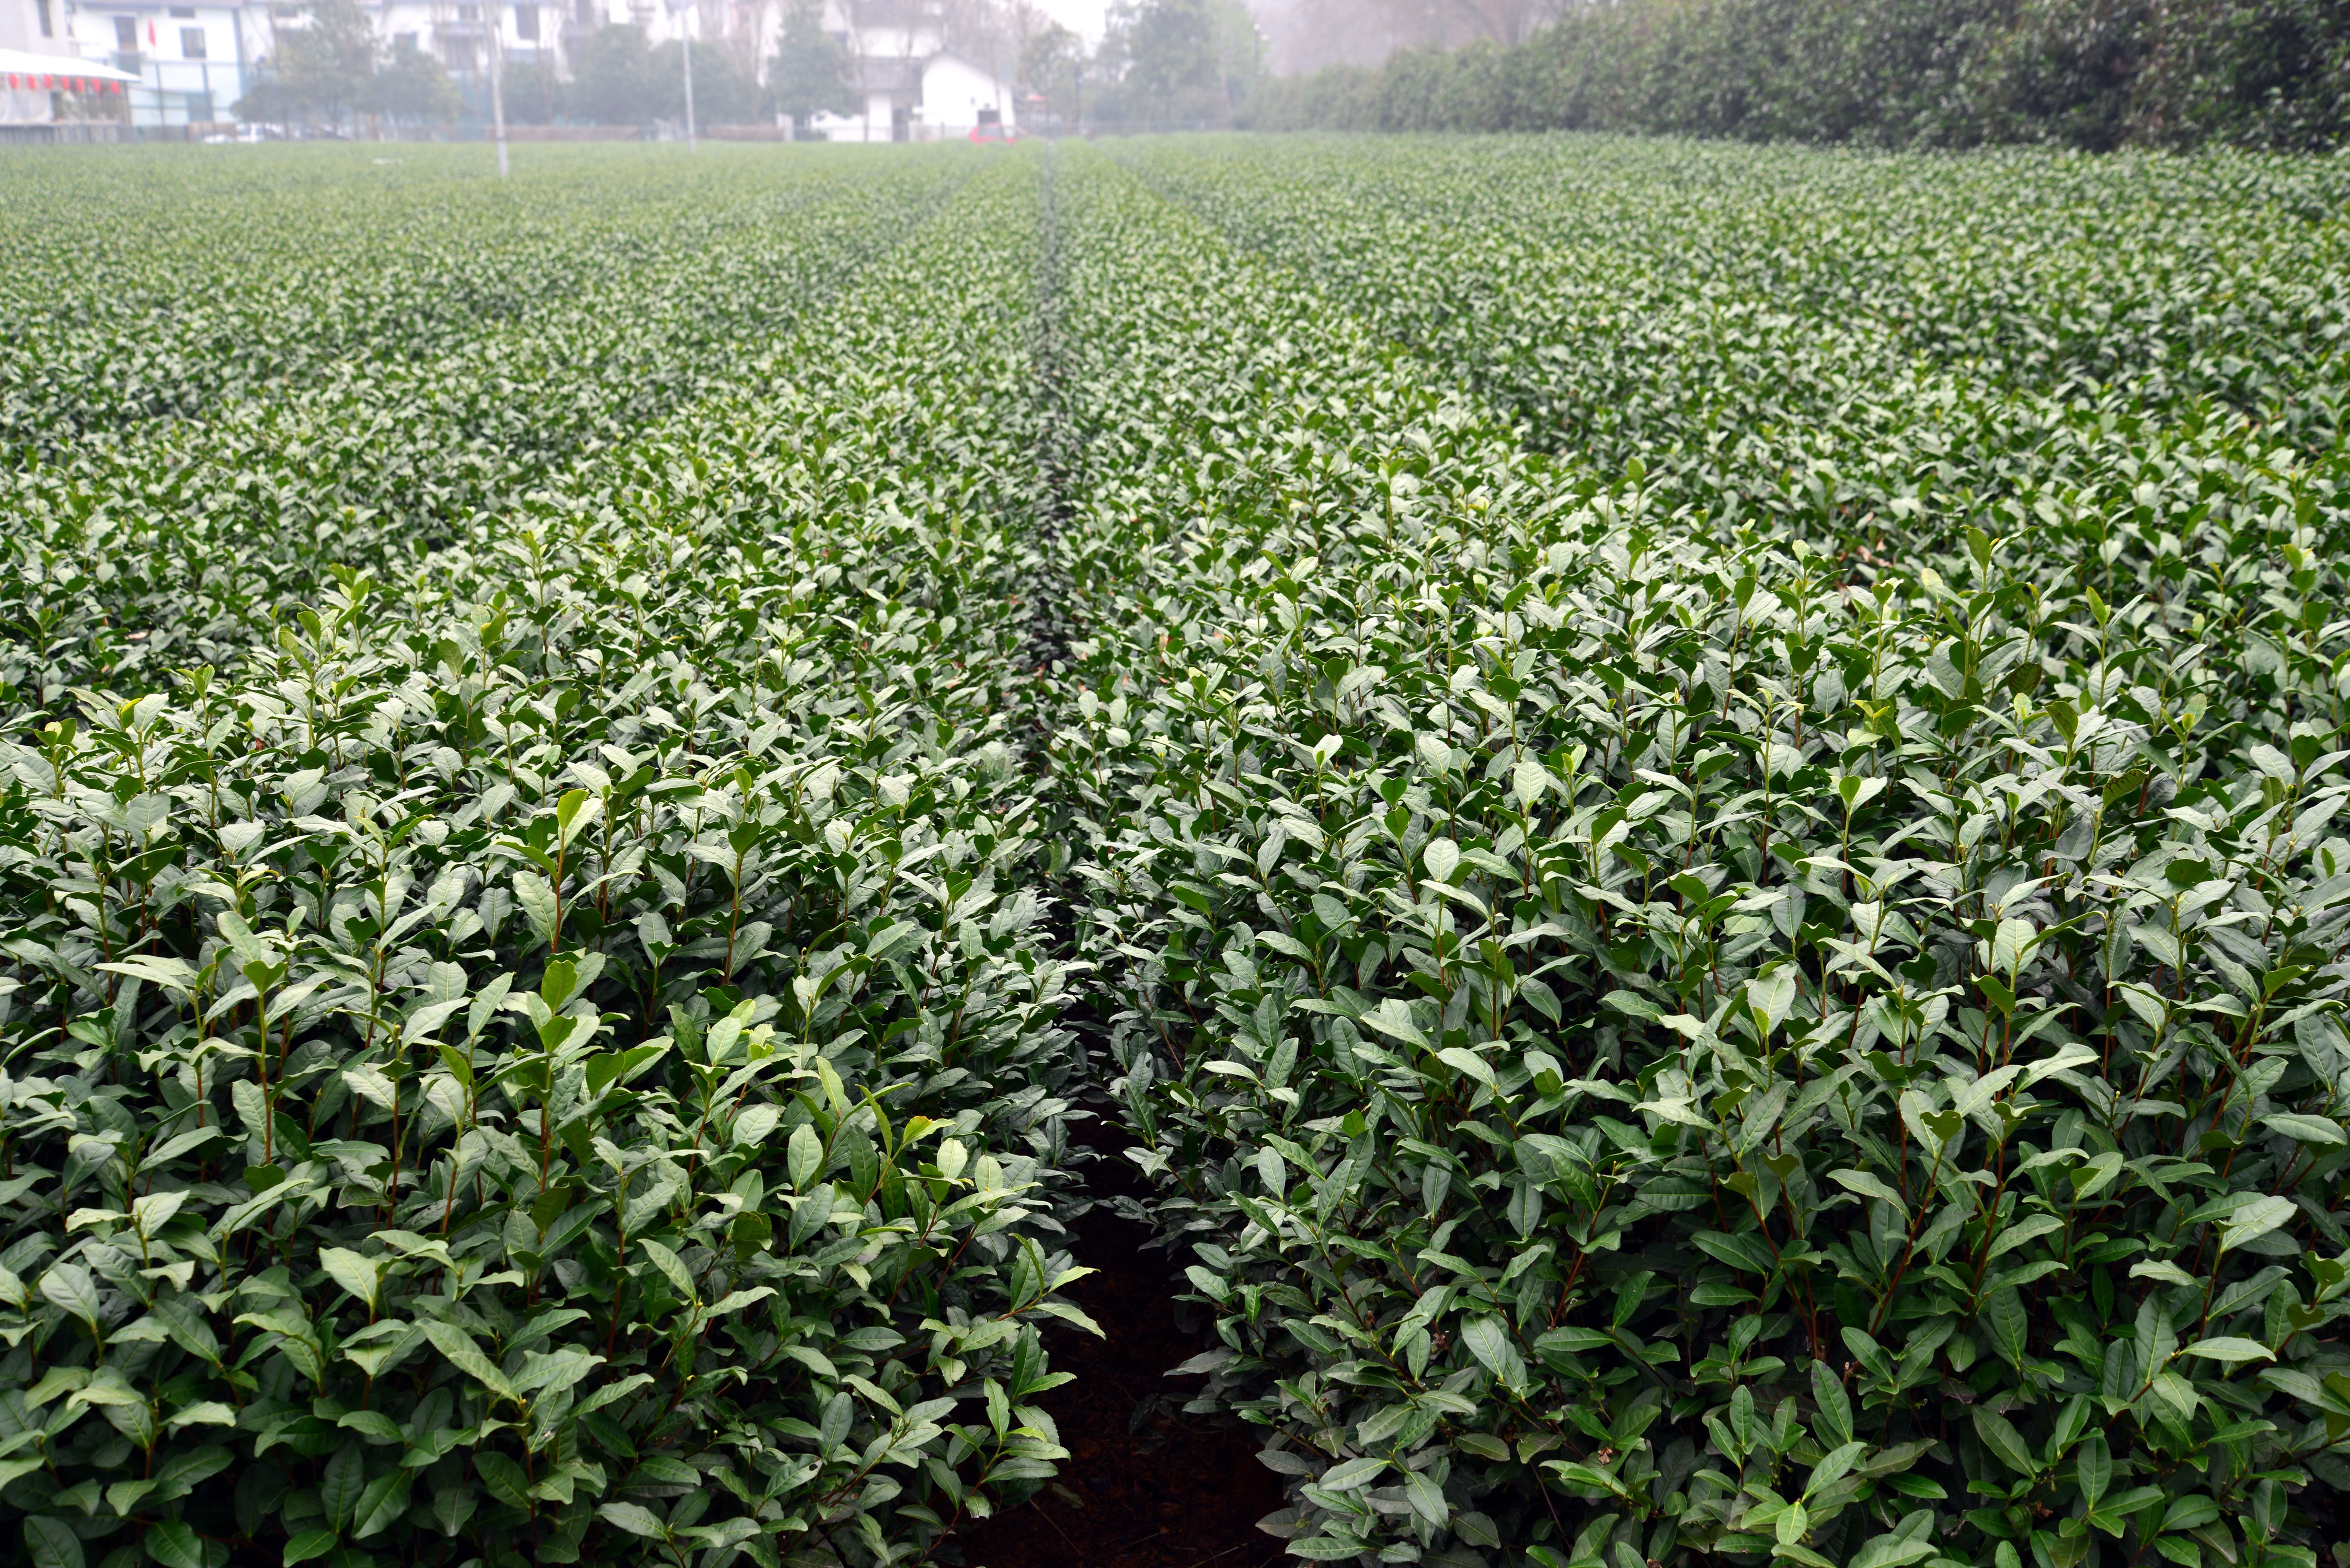 University of Georgia horticulture professor Donglin Zhang worked with a team of American and Chinese scientists in fall 2016 to help identify tea varieties that might work well in the American South. Zhang and his colleagues visited tea fields in China as part of a research trip sponsored by the USDA and the Chinese Ministry of Agriculture.